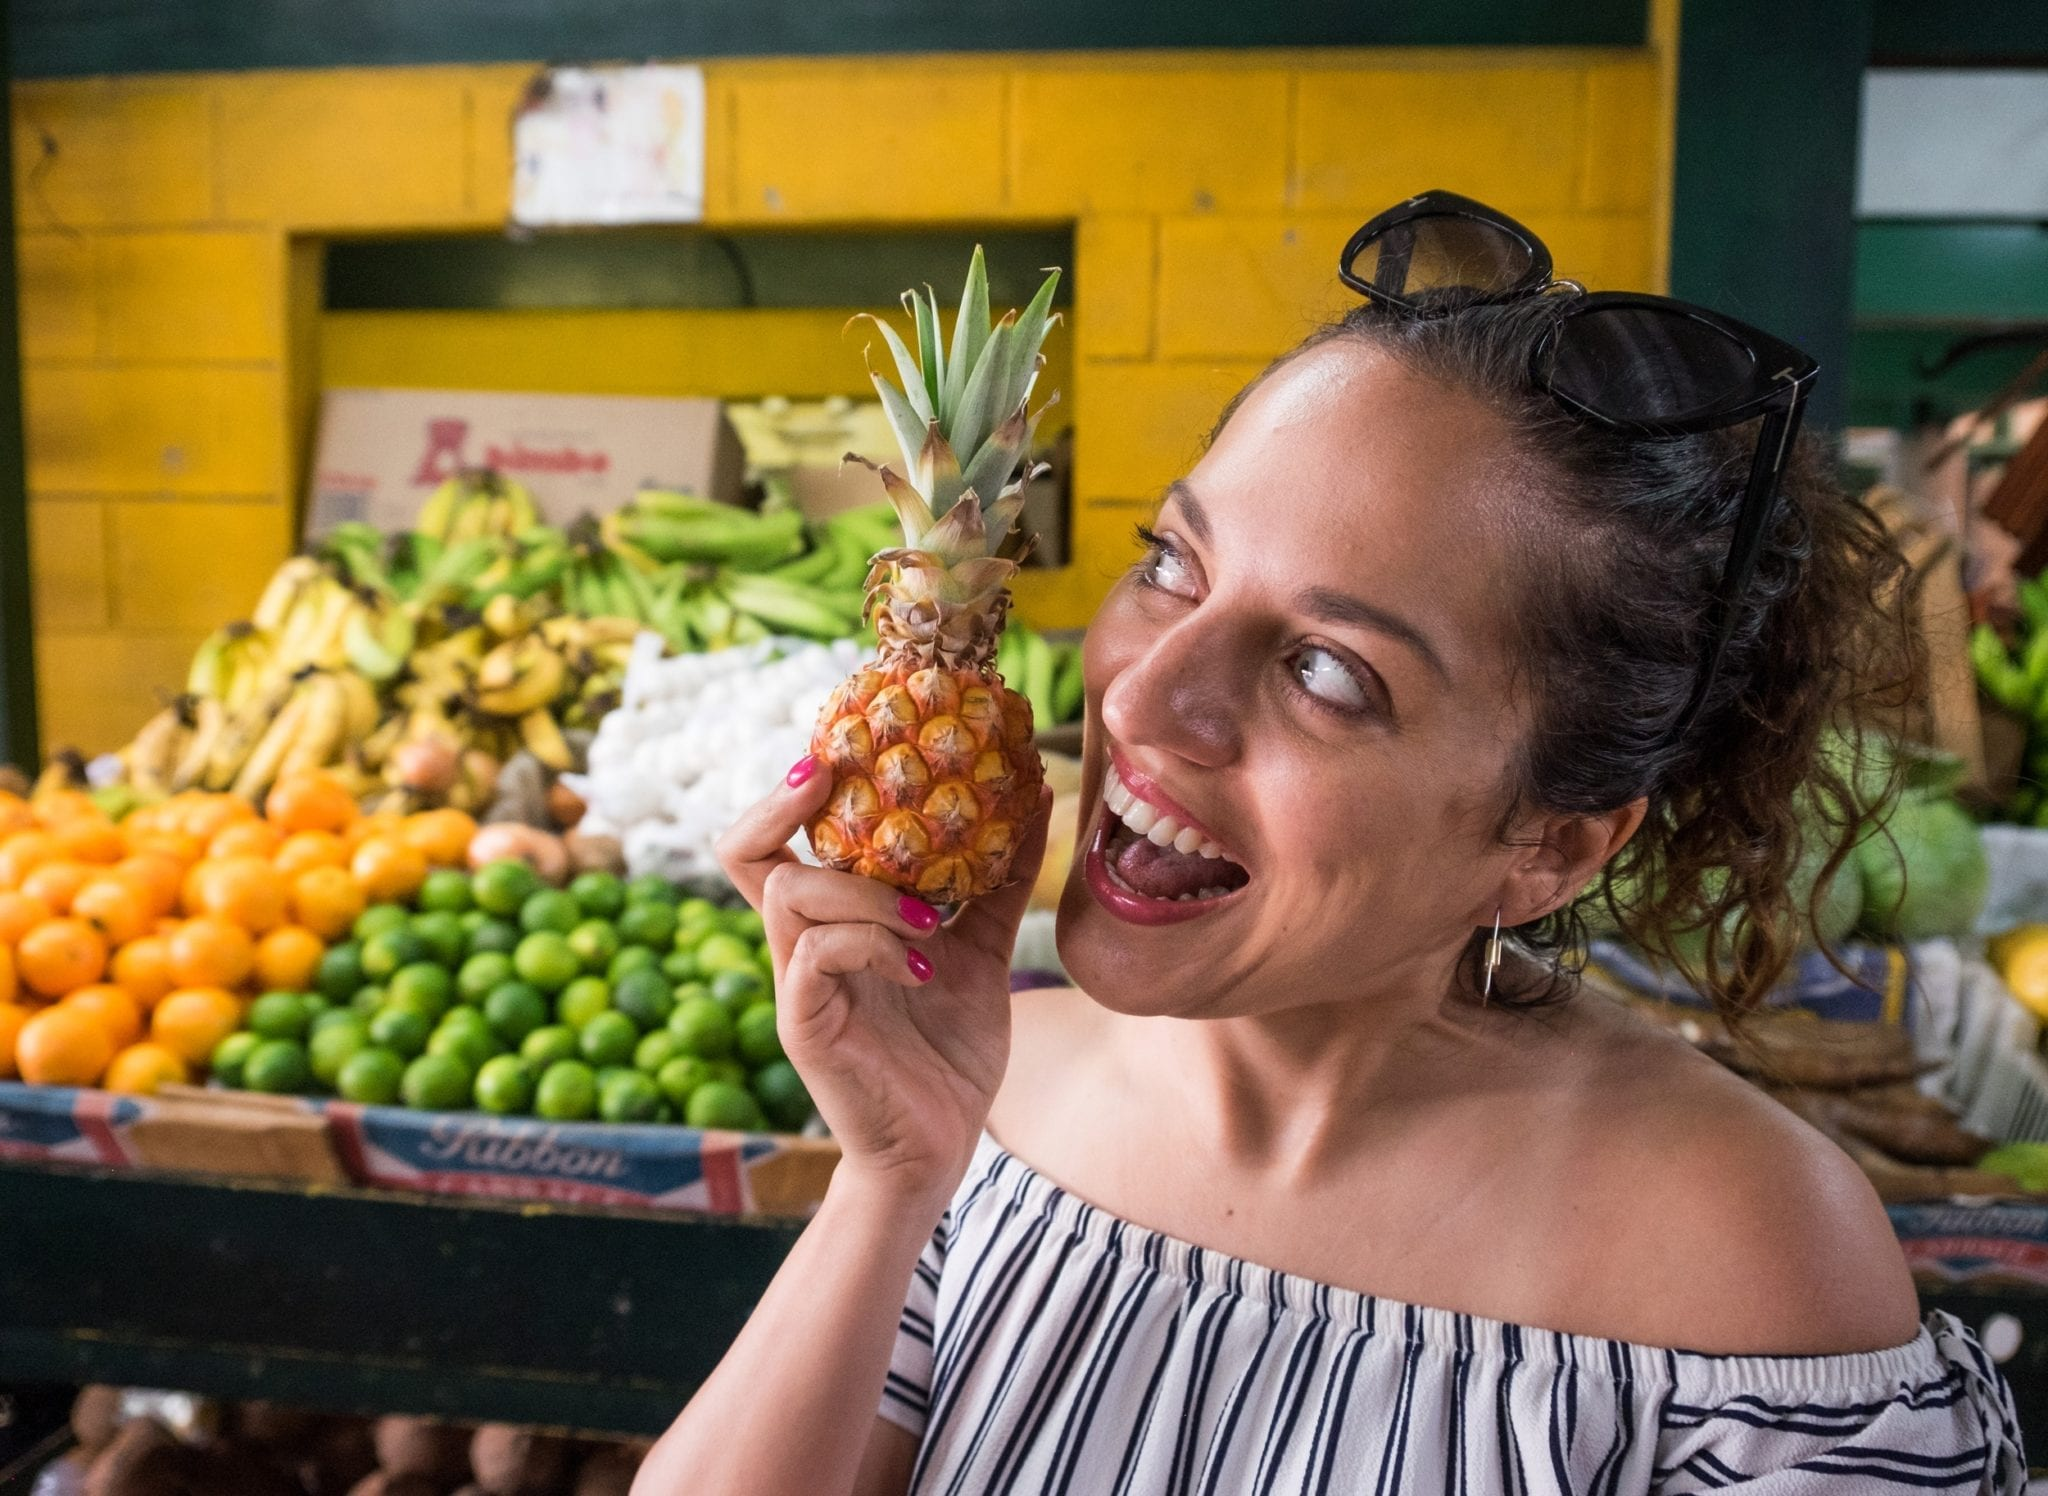 Kate holds a tiny Antigua black pineapple in her hand. It is the size of her fist. She holds it next to her mouth and pretends to eat the whole thing, a smile on her face. In the background are displays of fruit, including limes and oranges.